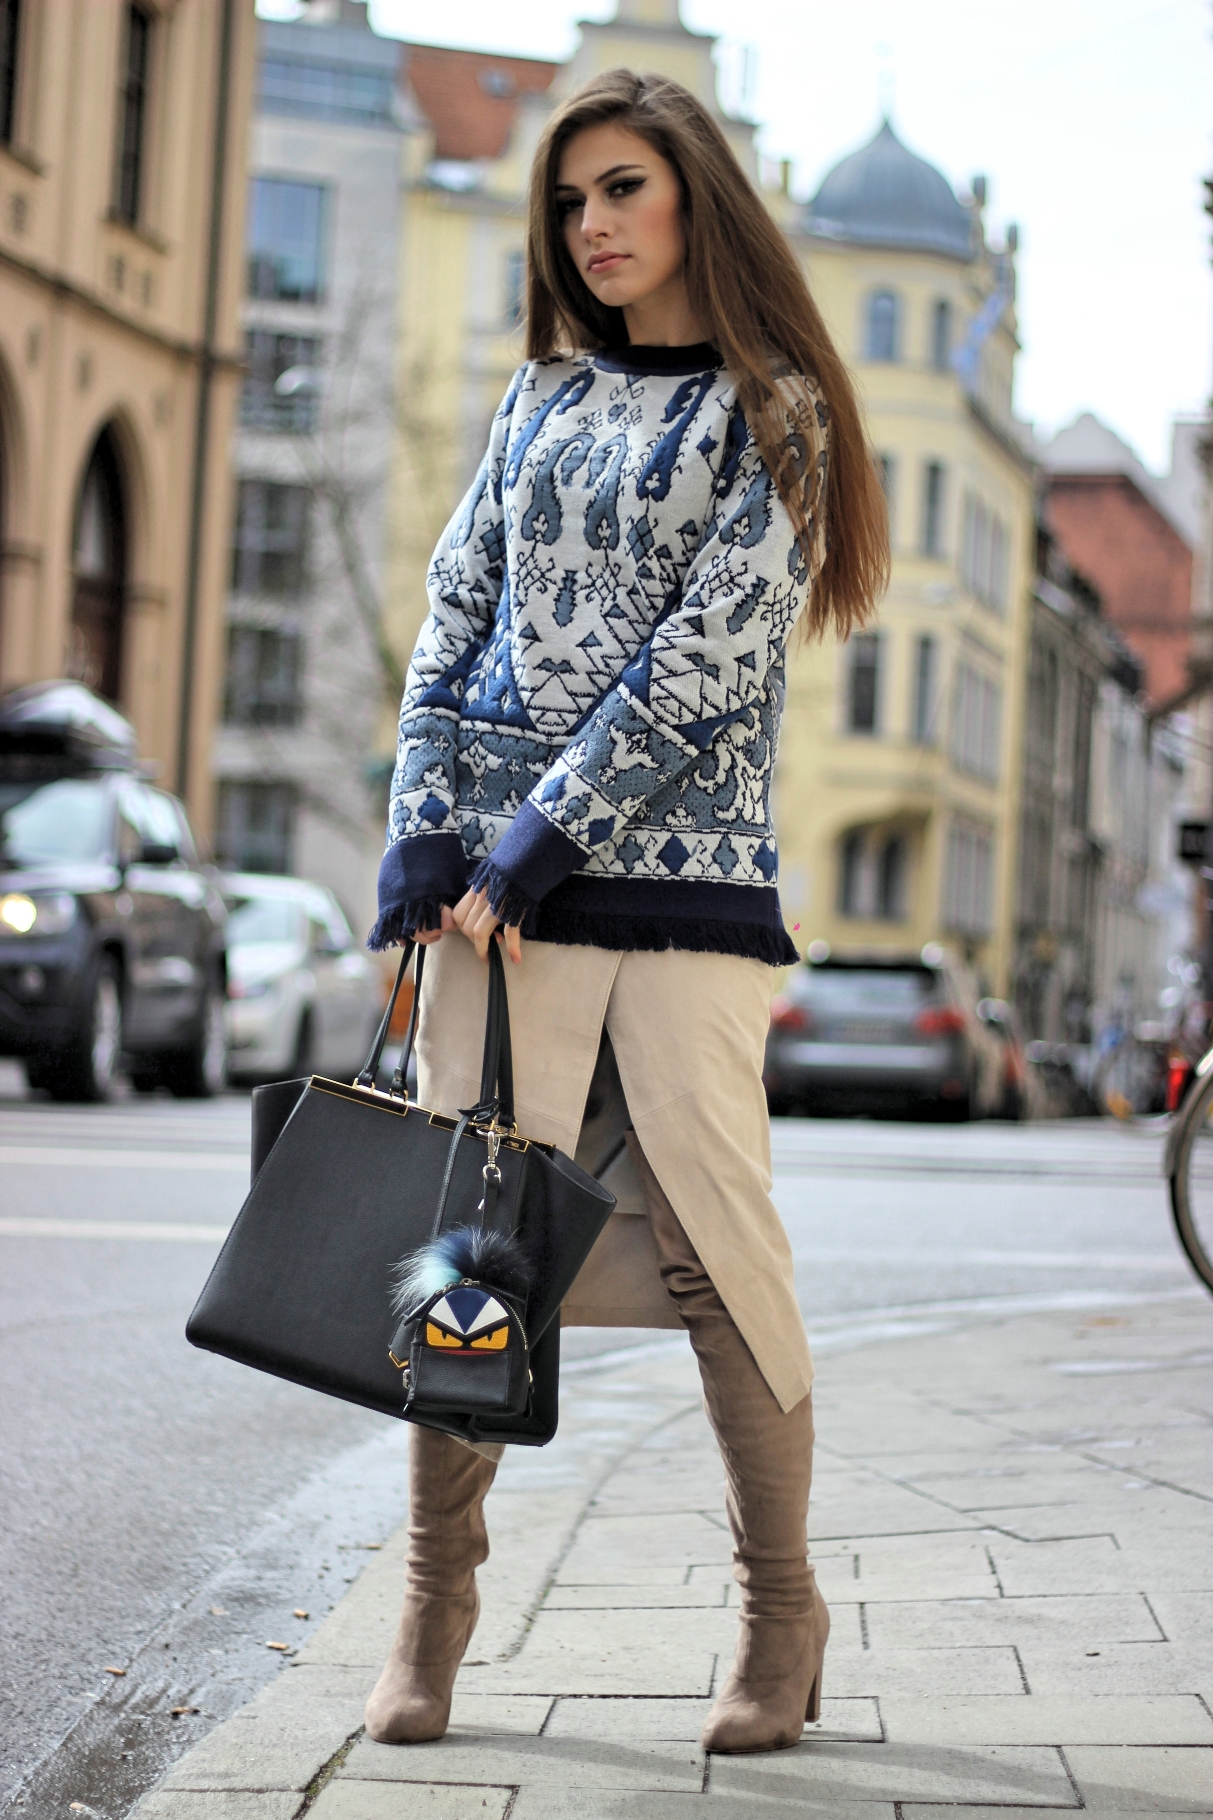 sweater-tory-burch-fendi-bag-3jours-monster-bagcharm-streetstyle-germany